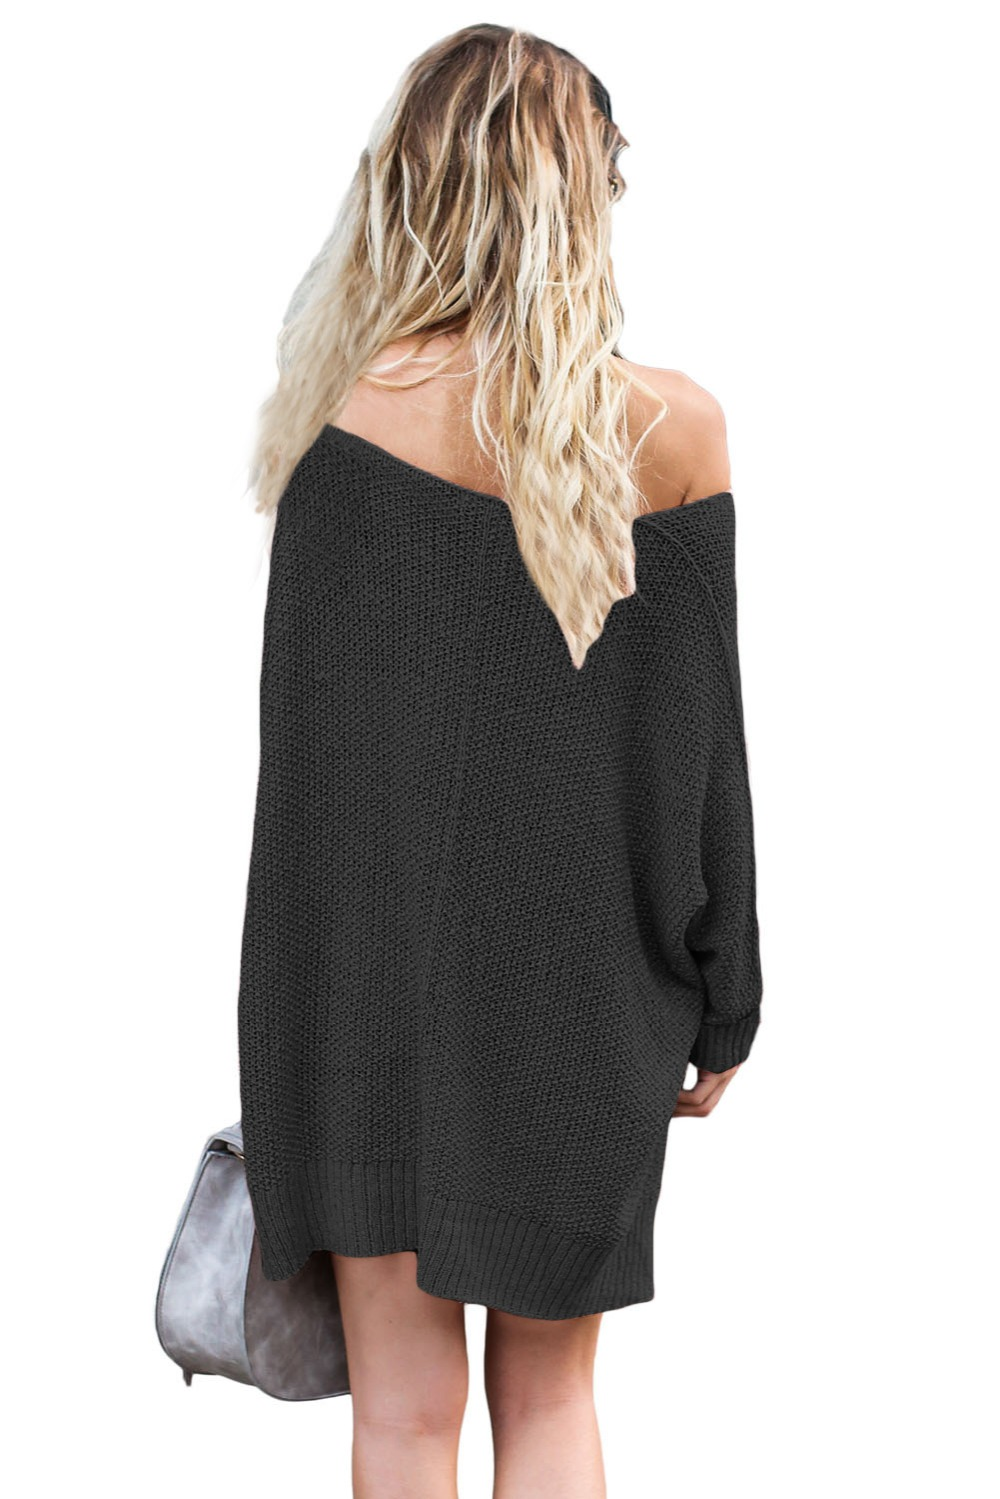 Black-Oversized-Knit-High-low-Slit-Side-Sweater-LC27680-2-3